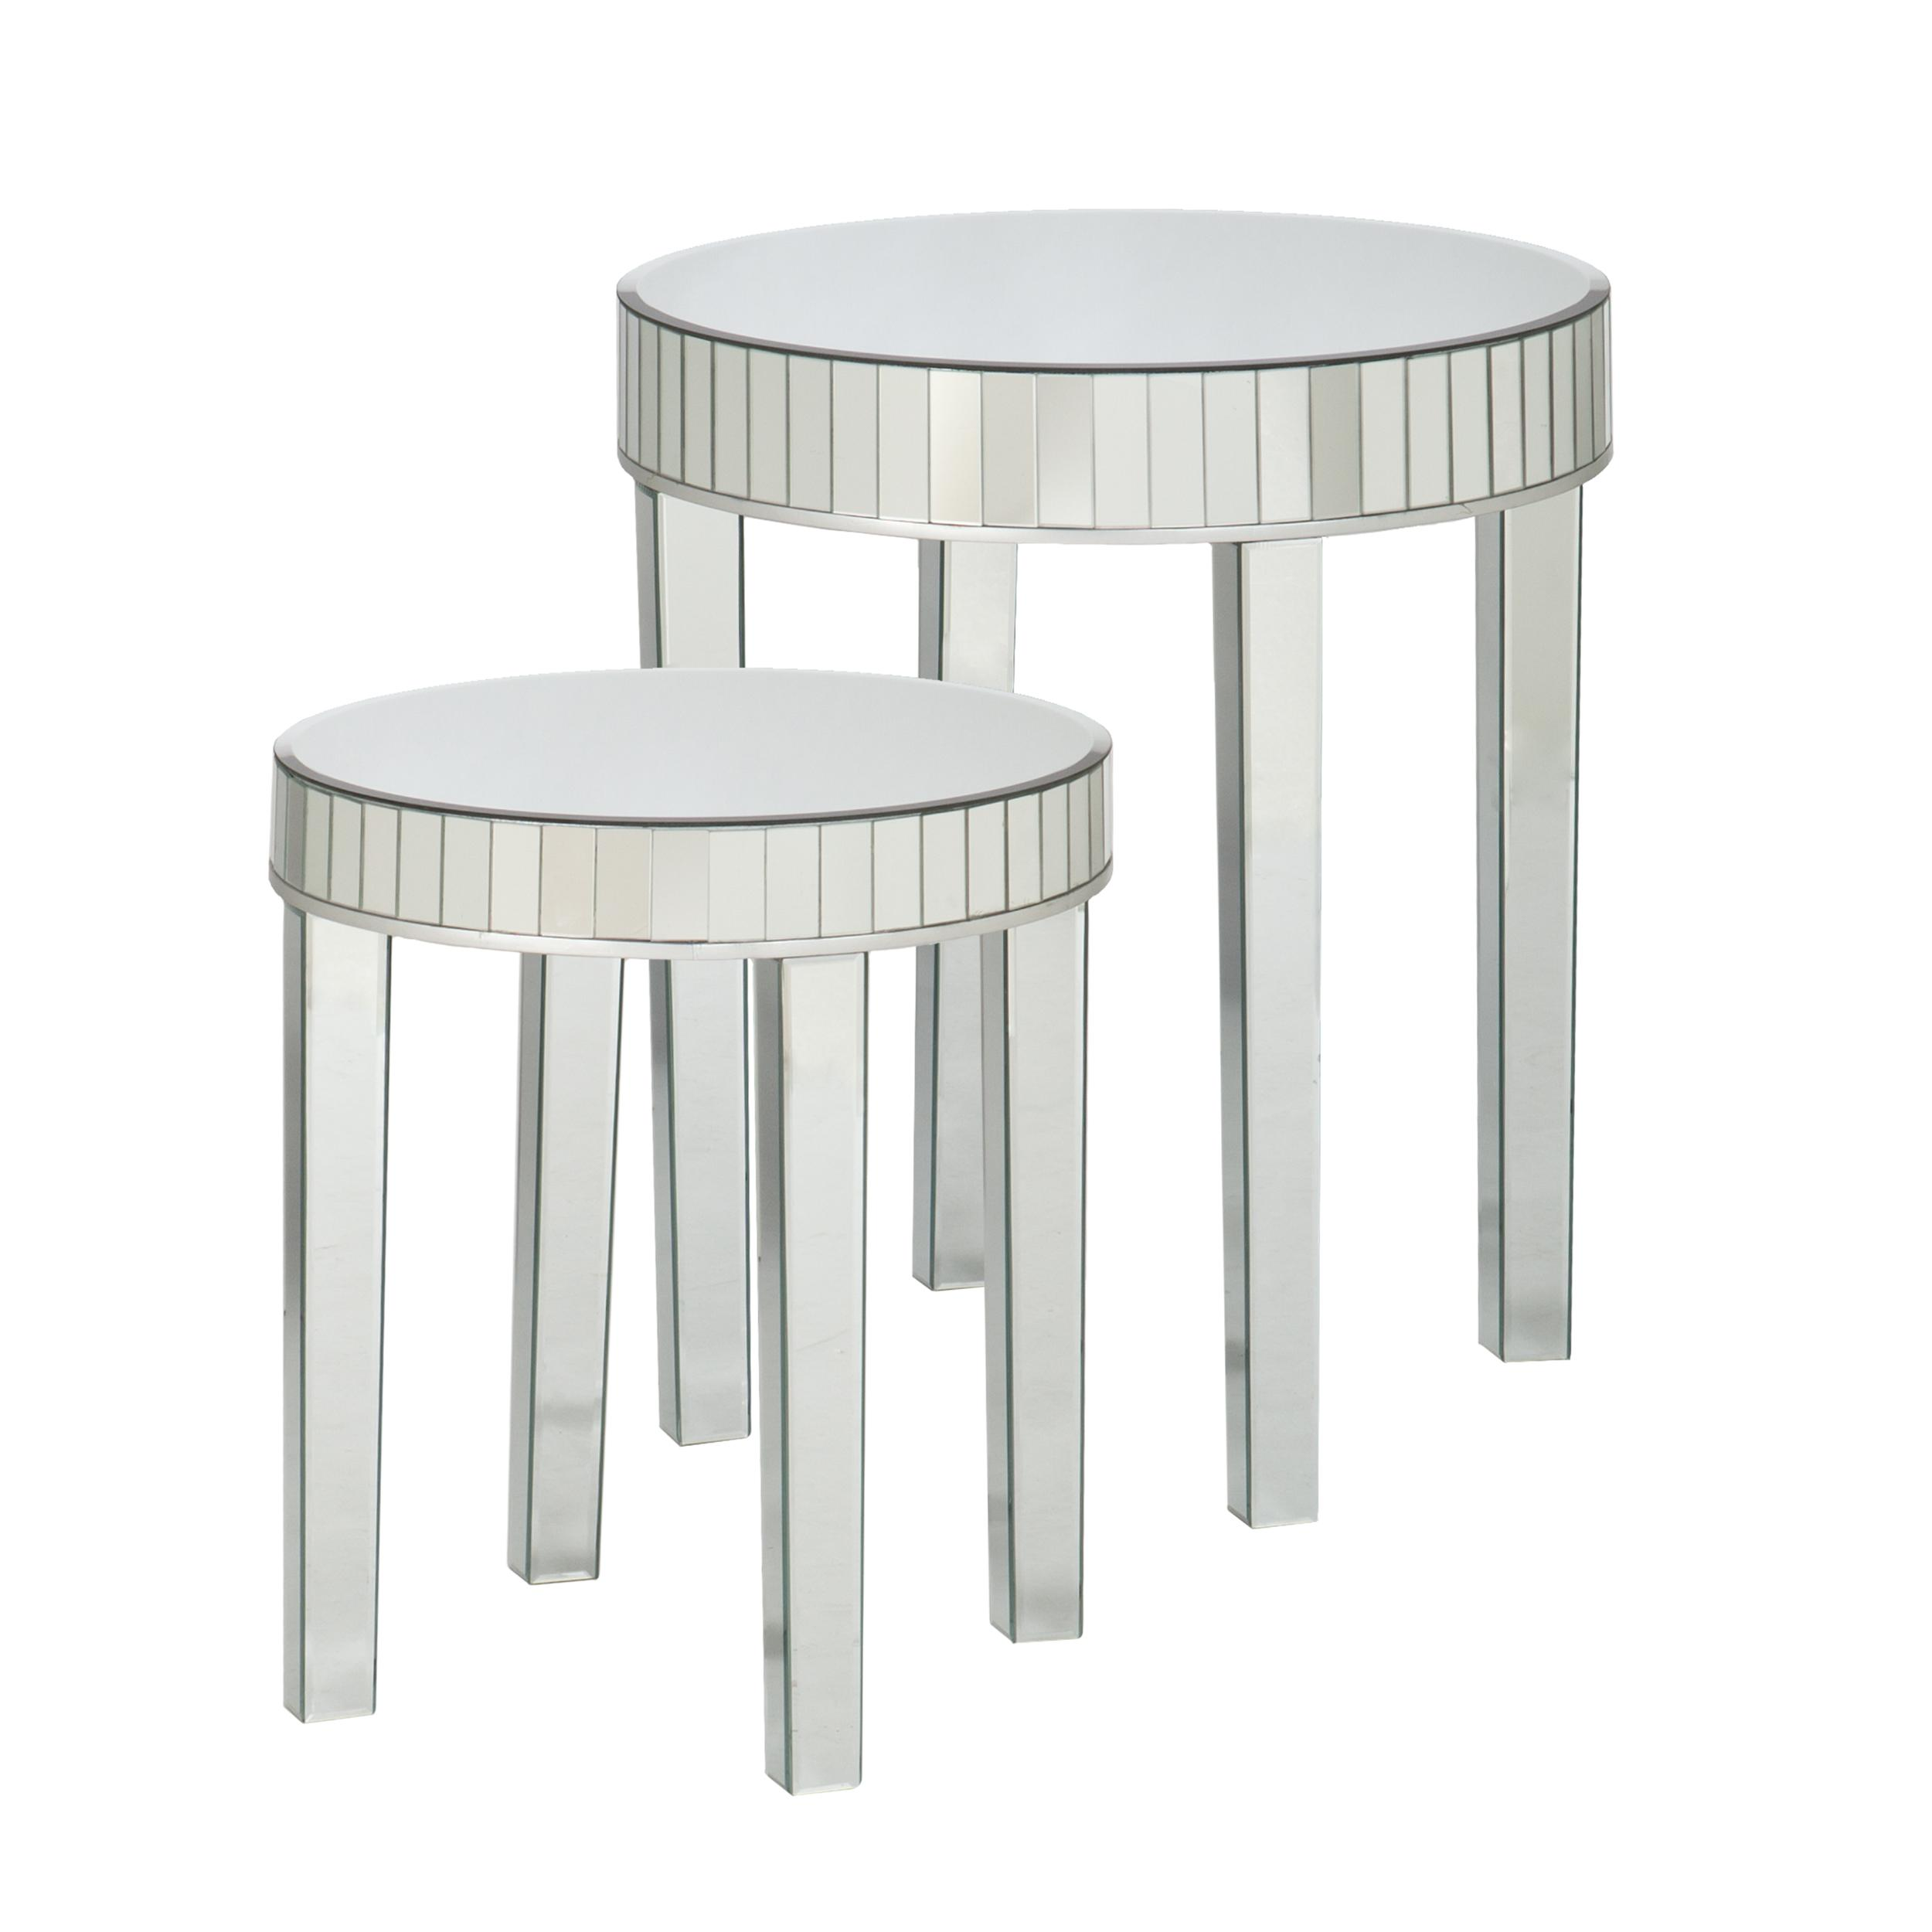 round mirrored nesting table 2pc set kitchen dining. Black Bedroom Furniture Sets. Home Design Ideas